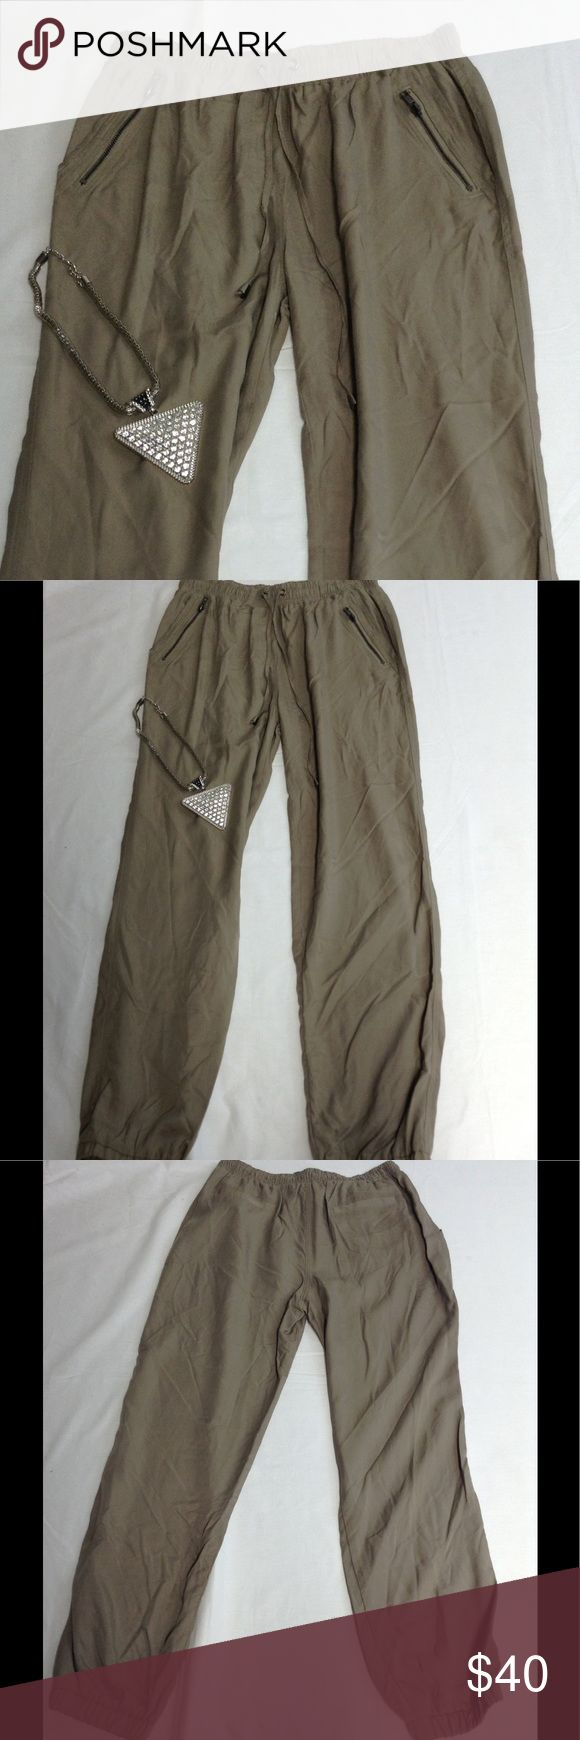 "Wilde heart tan brown jogger pants size L WAIST 15"" STRETCHES TO 18"" - INSEAM 29"" - RISE 11"" - OUTSEAM 40"" MEASUREMENTS ARE TAKEN LAYING FLAT. ACCESSORIES NOT INCLUDED. THANK YOU FOR VISITING OUR CLOSET, COME BACK SOON! Pants Track Pants & Joggers"